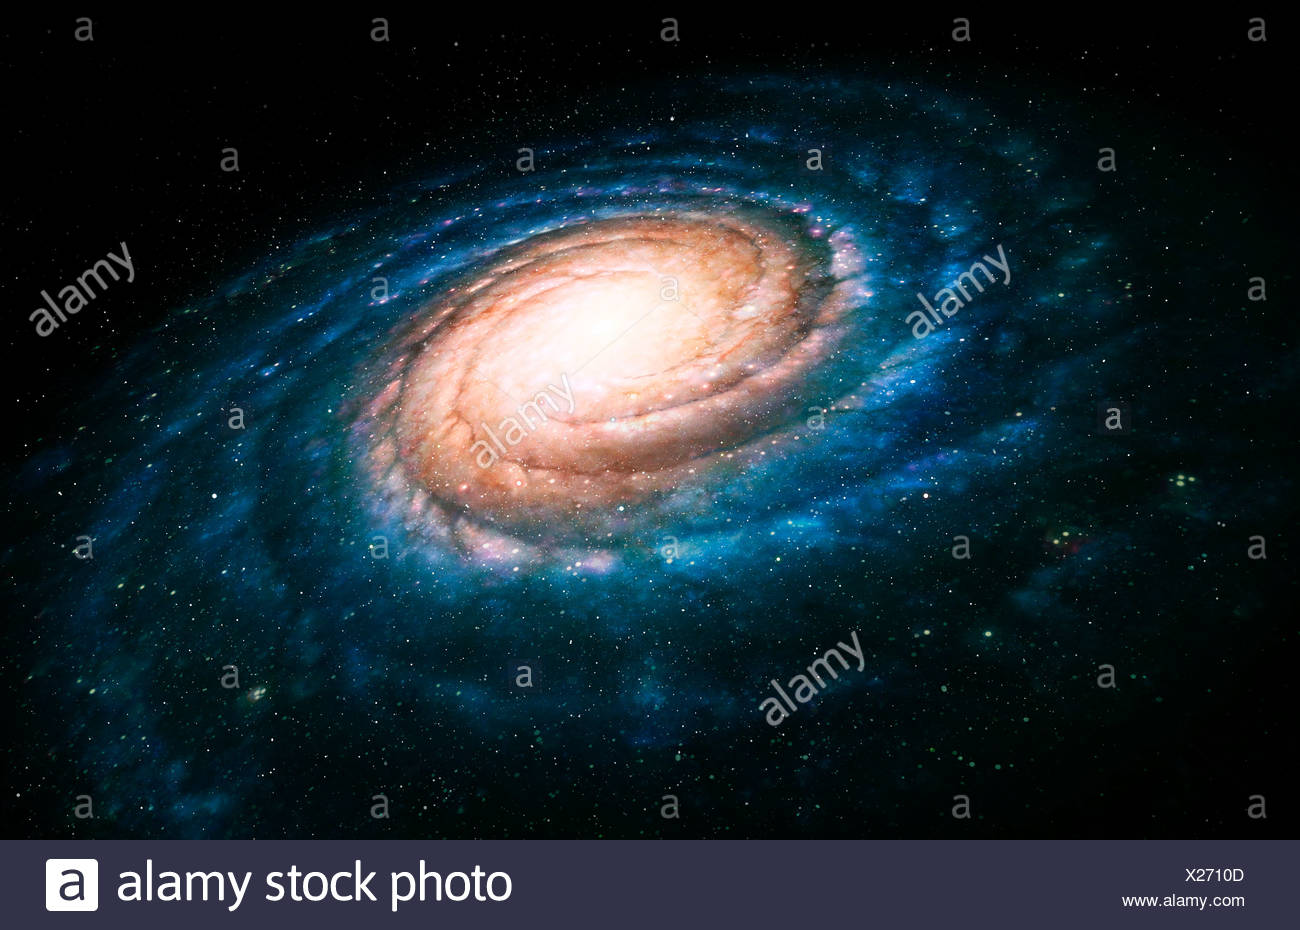 Spiral galaxy. Artwork of a spiral galaxy seen atan oblique angle. The spiral arms (blue) containhot, young stars. Stock Photo